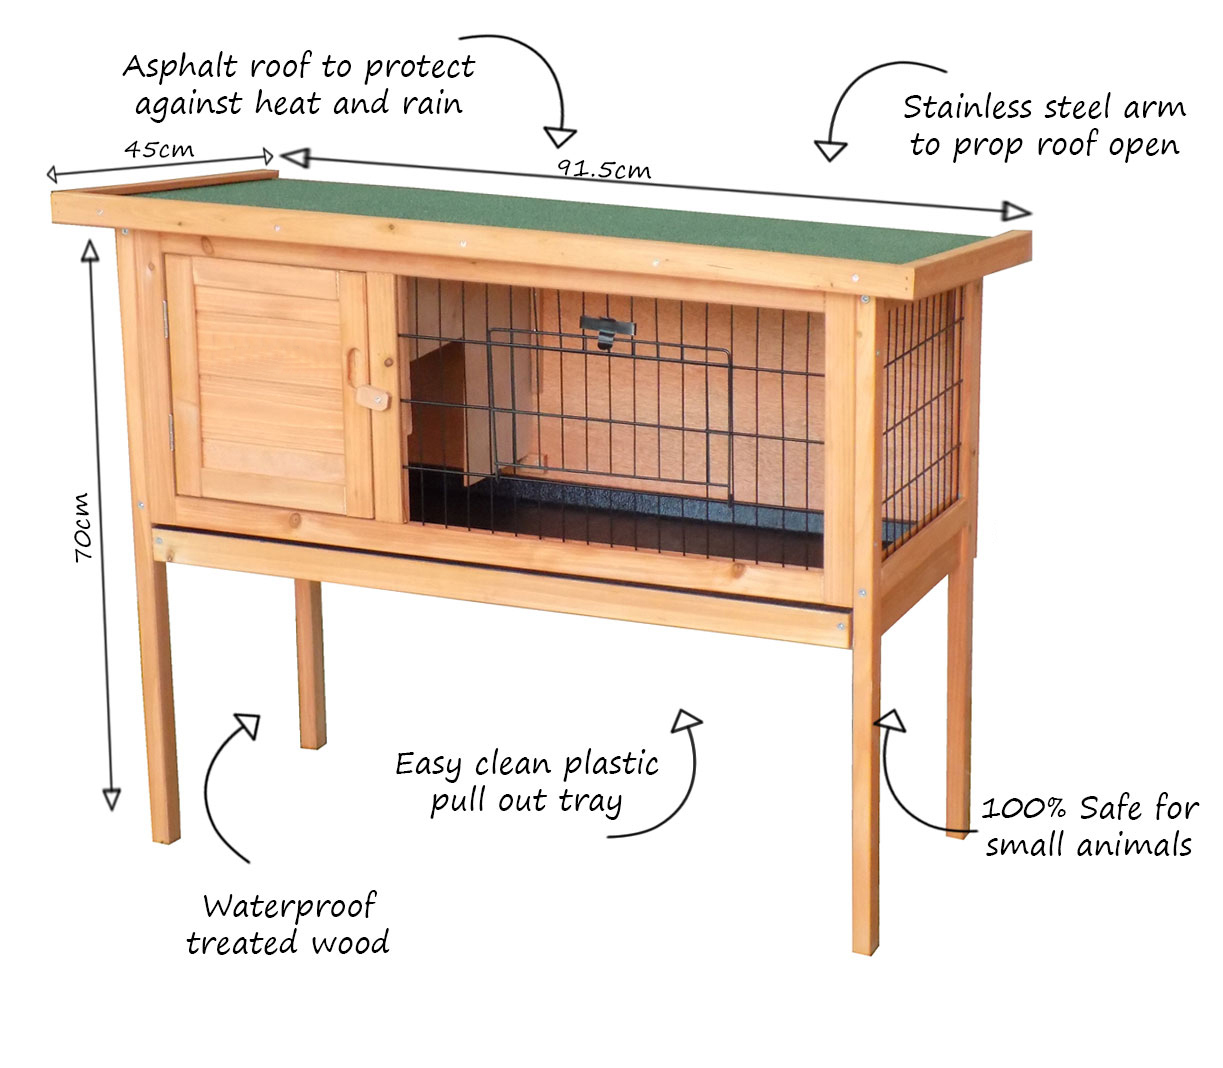 Charles-Bentley-Wooden-Raised-Rabbit-Hutch-Guinea-Pig-Cage-Run-w-Cleaning-Tray miniatura 9